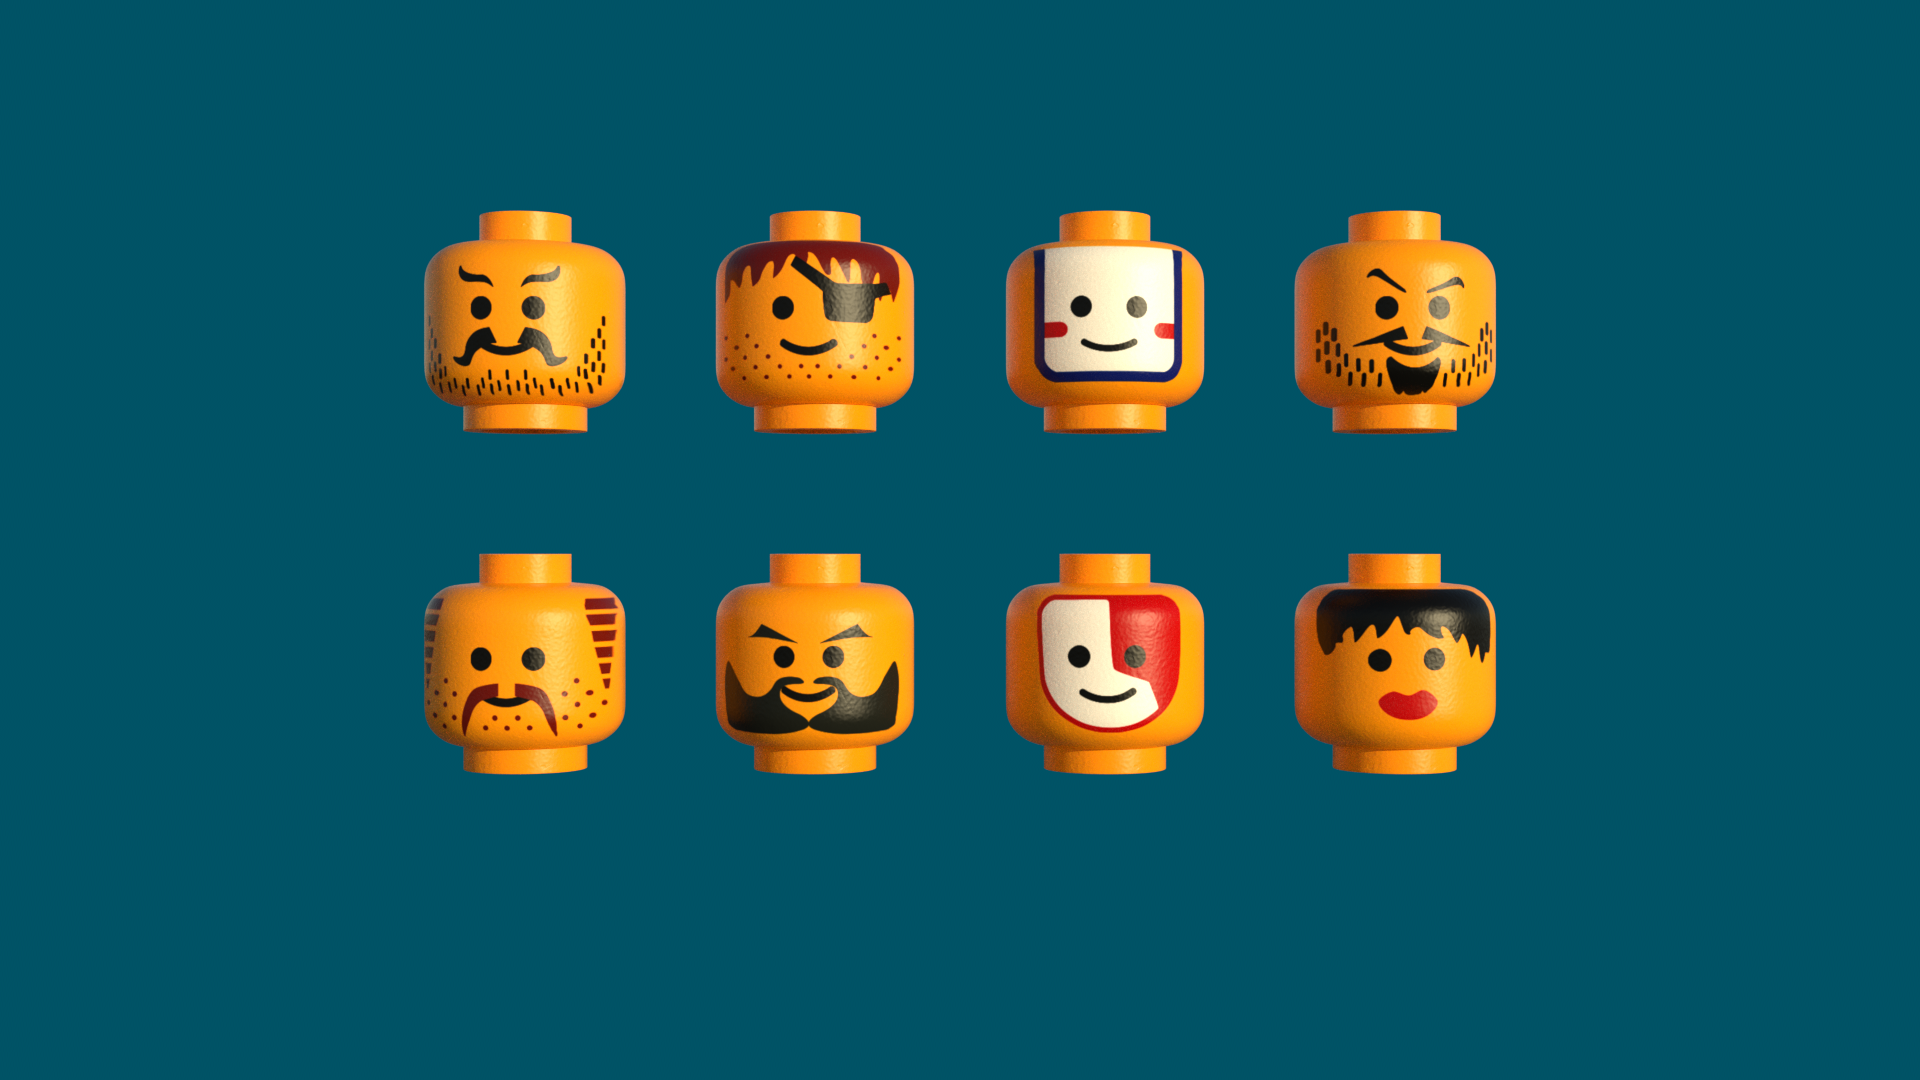 lego_heads.png